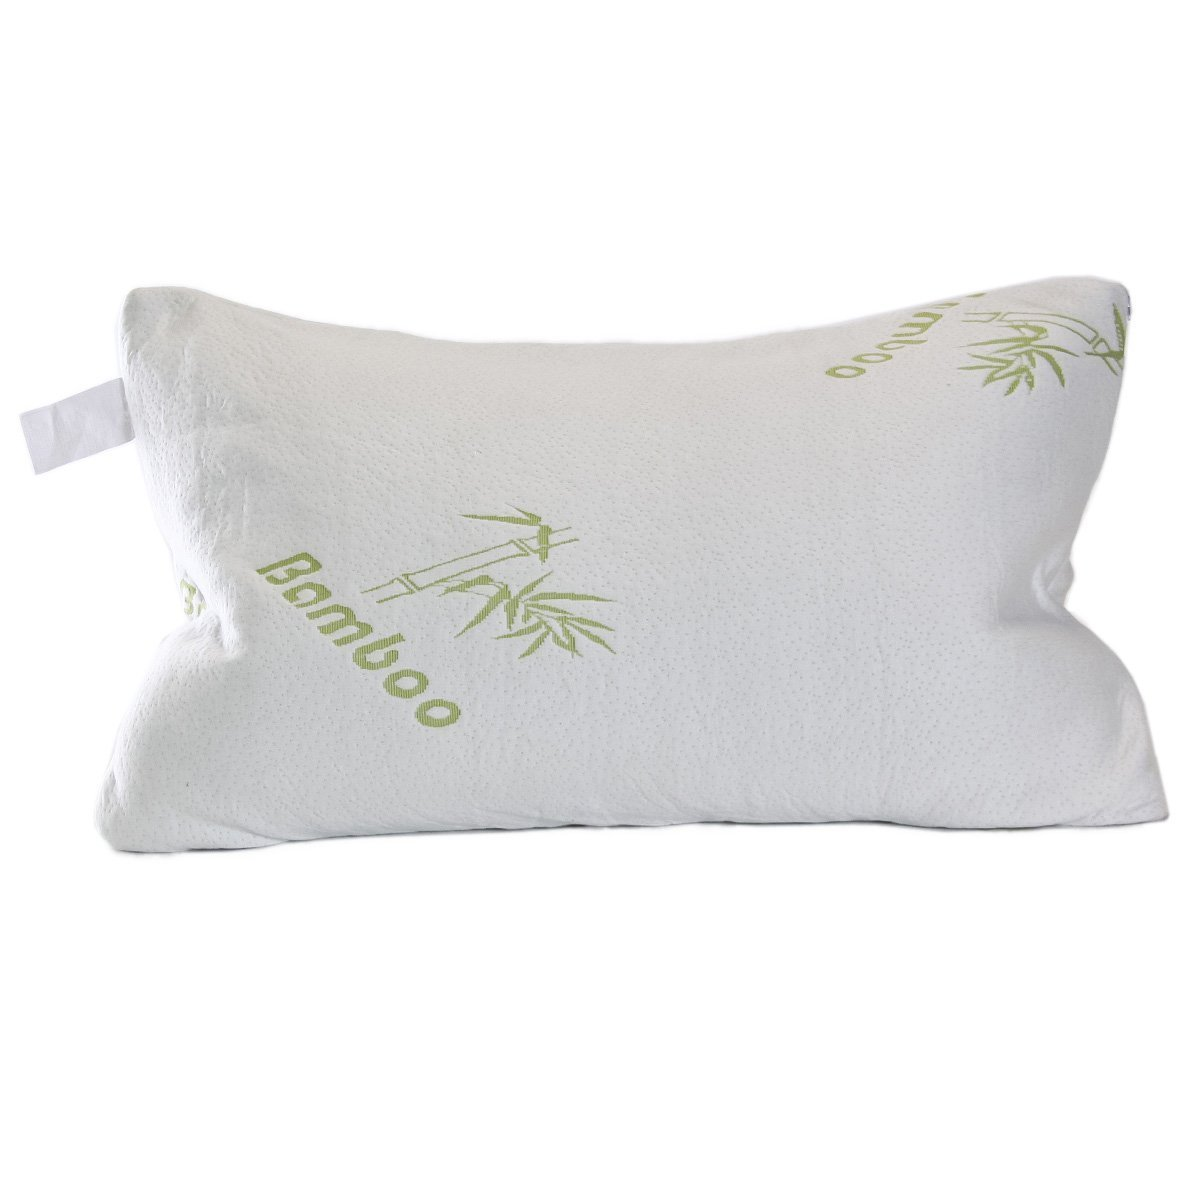 Bamboo Pillow With Adaptive Memory Foam Review